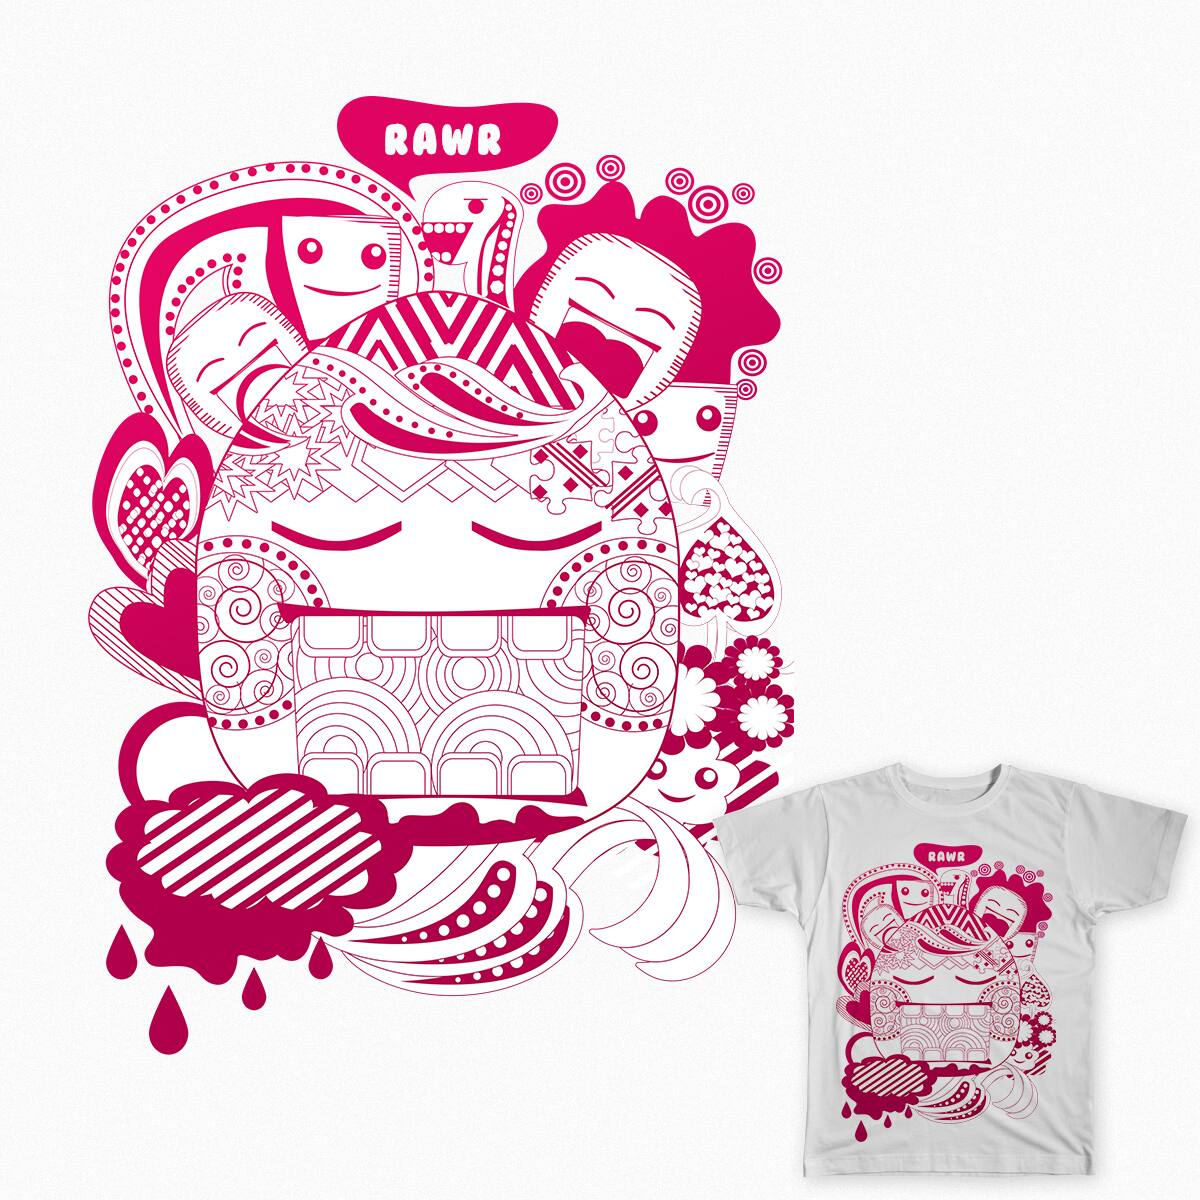 Hungry Shapes by aniveeej on Threadless